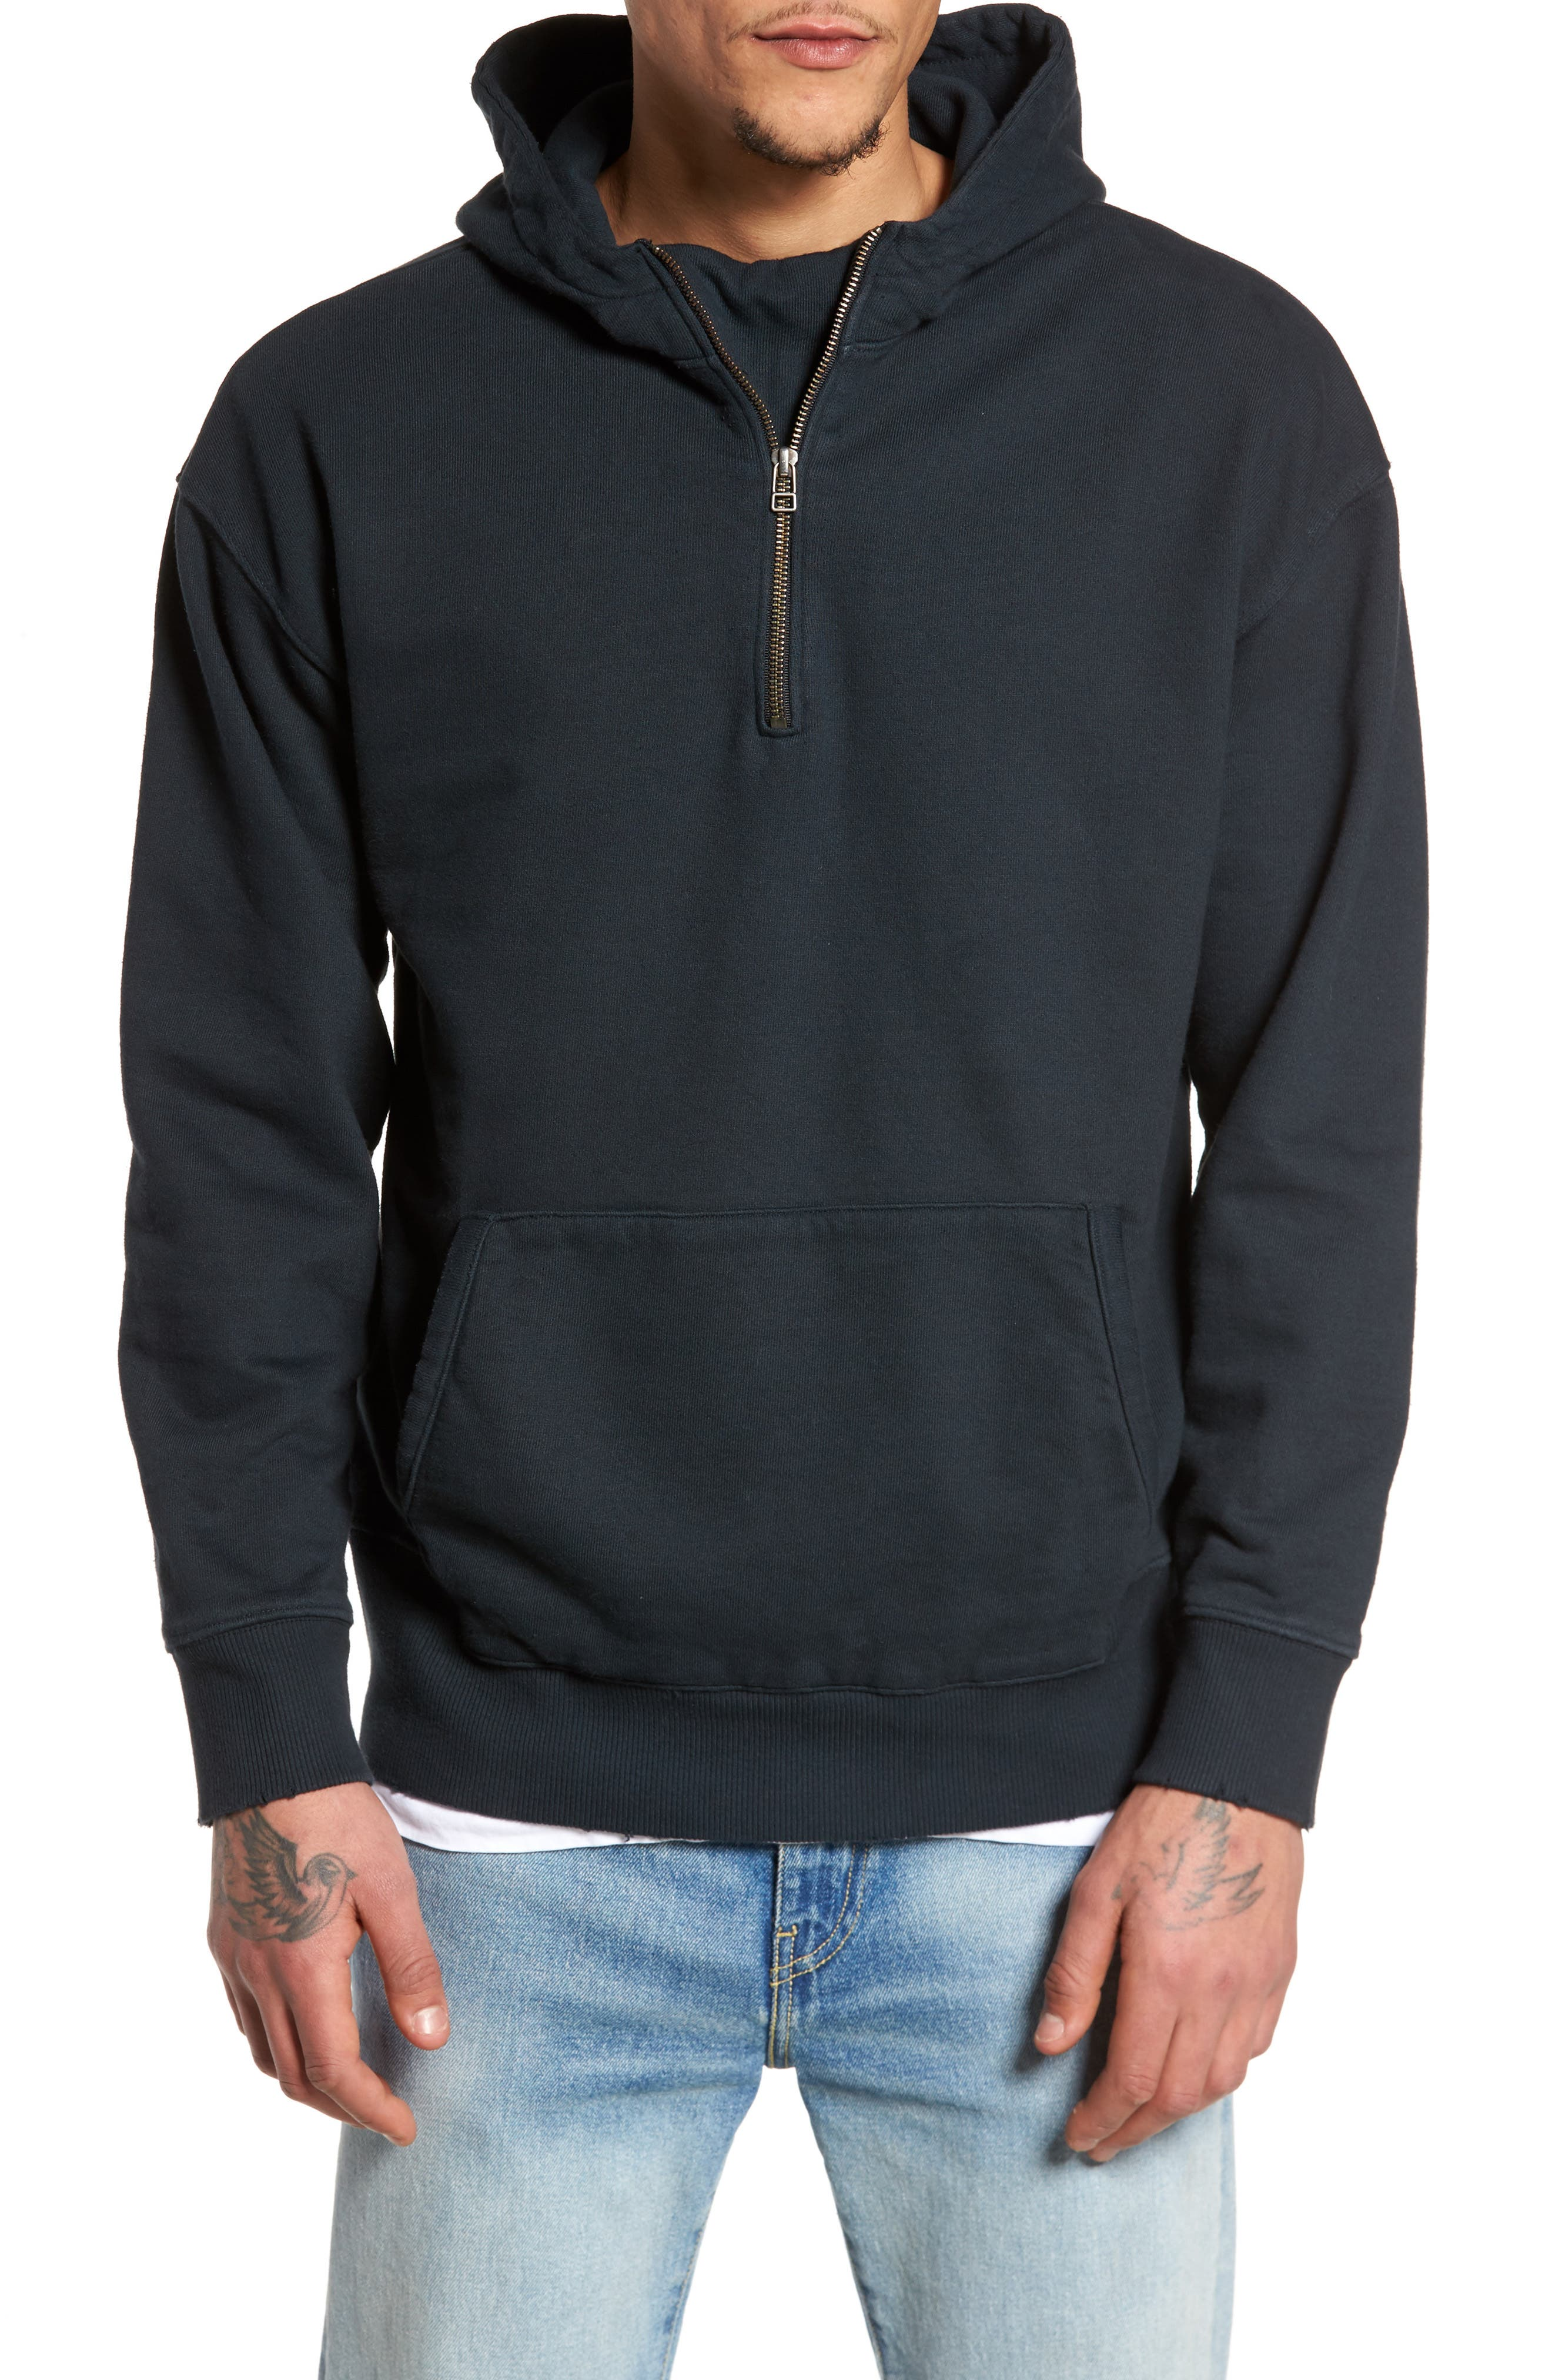 French Terry Hoodie,                             Main thumbnail 1, color,                             001